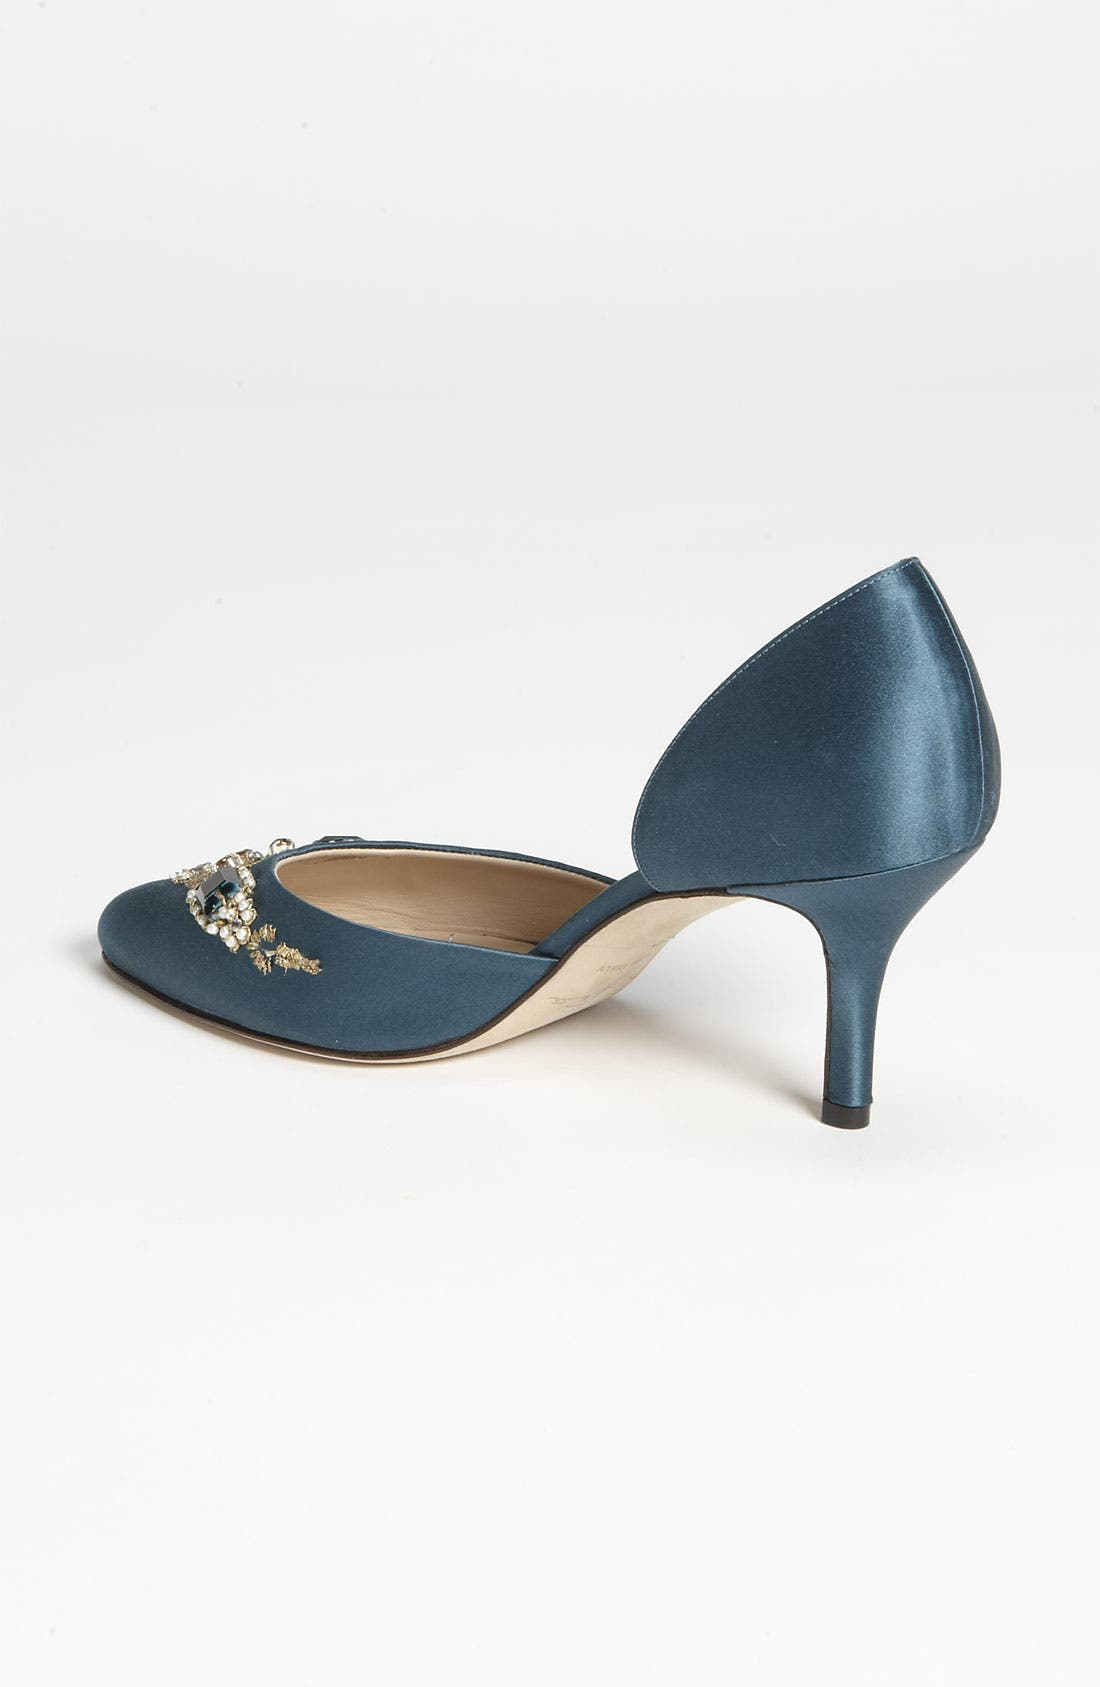 Alternate Image 2  - Oscar de la Renta 'Binato' Beaded Satin d'Orsay Pump